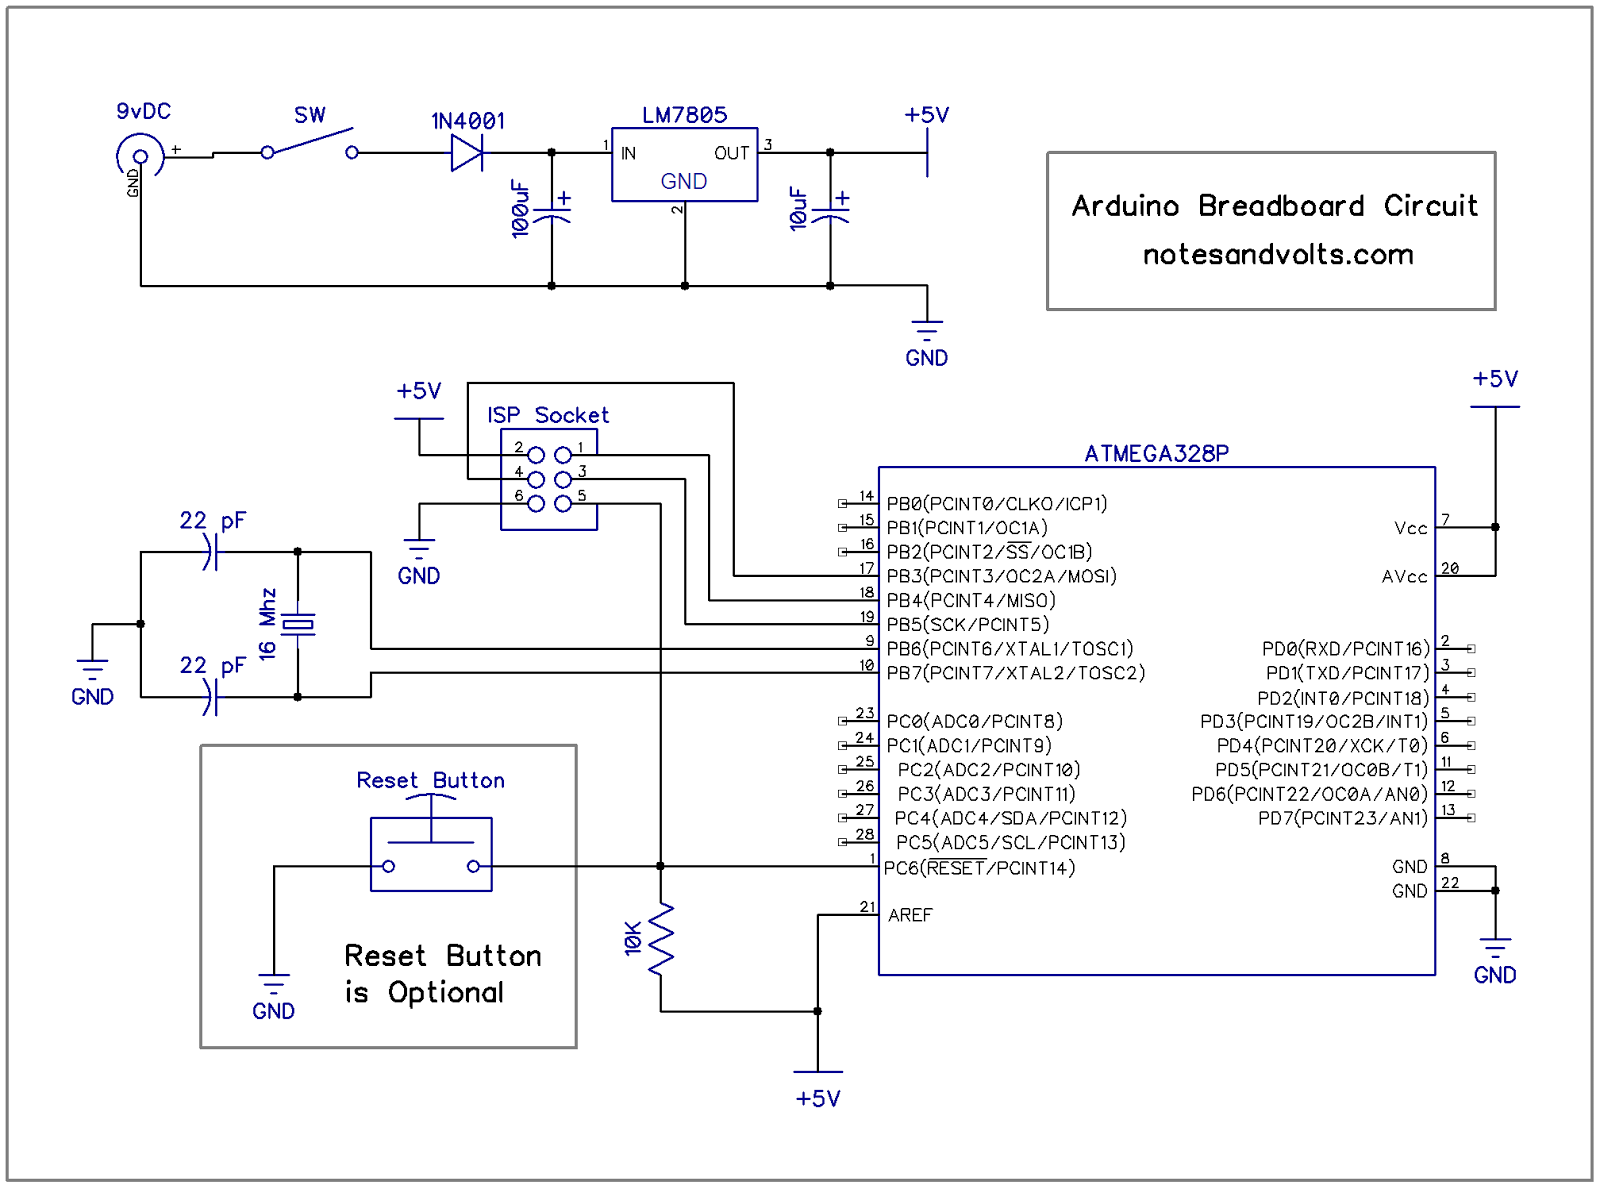 Notes And Volts Fun With Arduino On A Breadboard Isp In System Programming Standalone Circuits Open Lets Look At What This Circuit Is Doing The 9 Volt Power From Your Adapter Being Fed To 1n4001 Diode Will Only Allow Current Pass